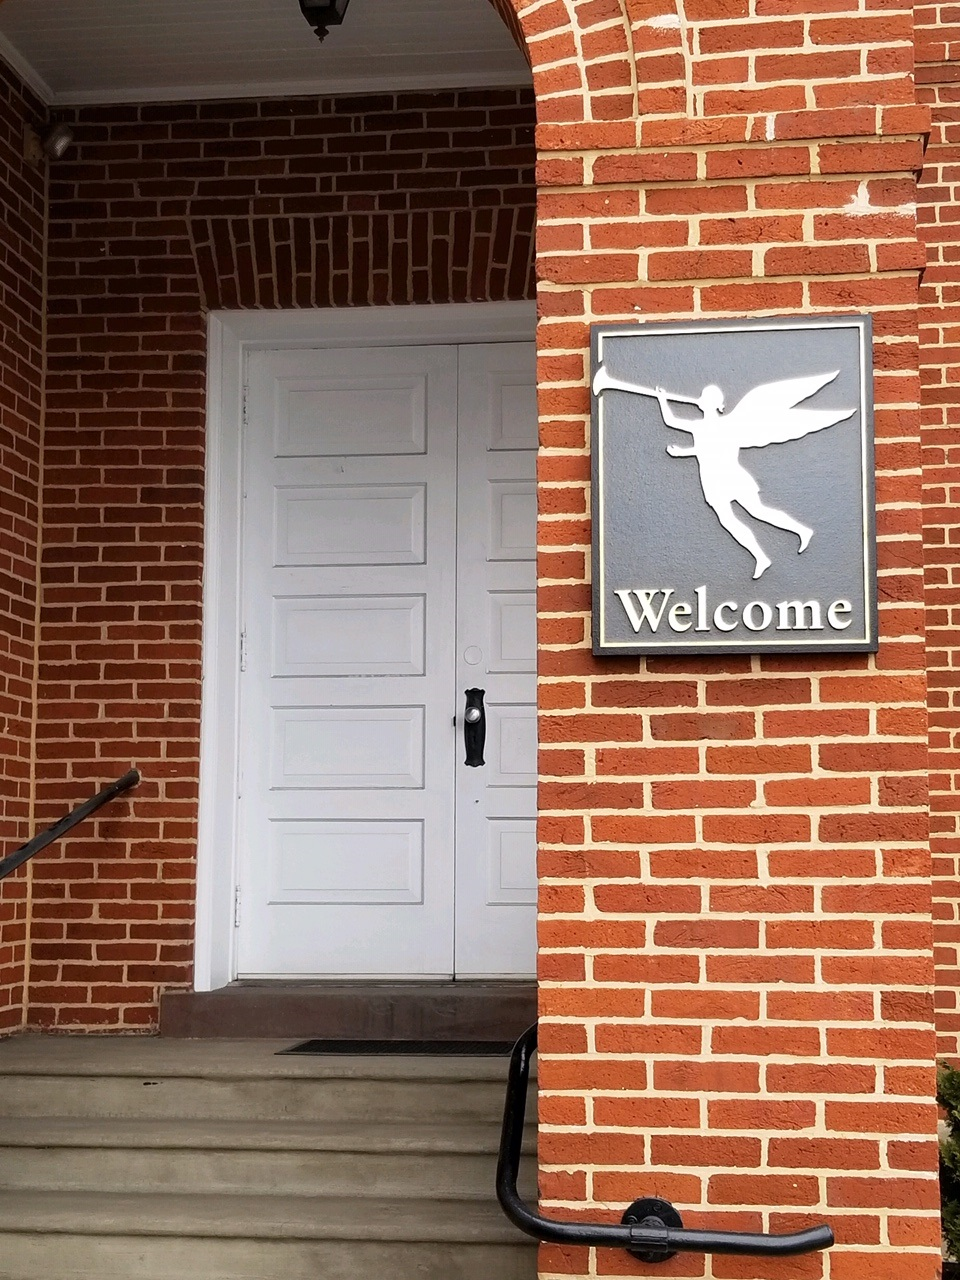 Welcome.....Come on in!